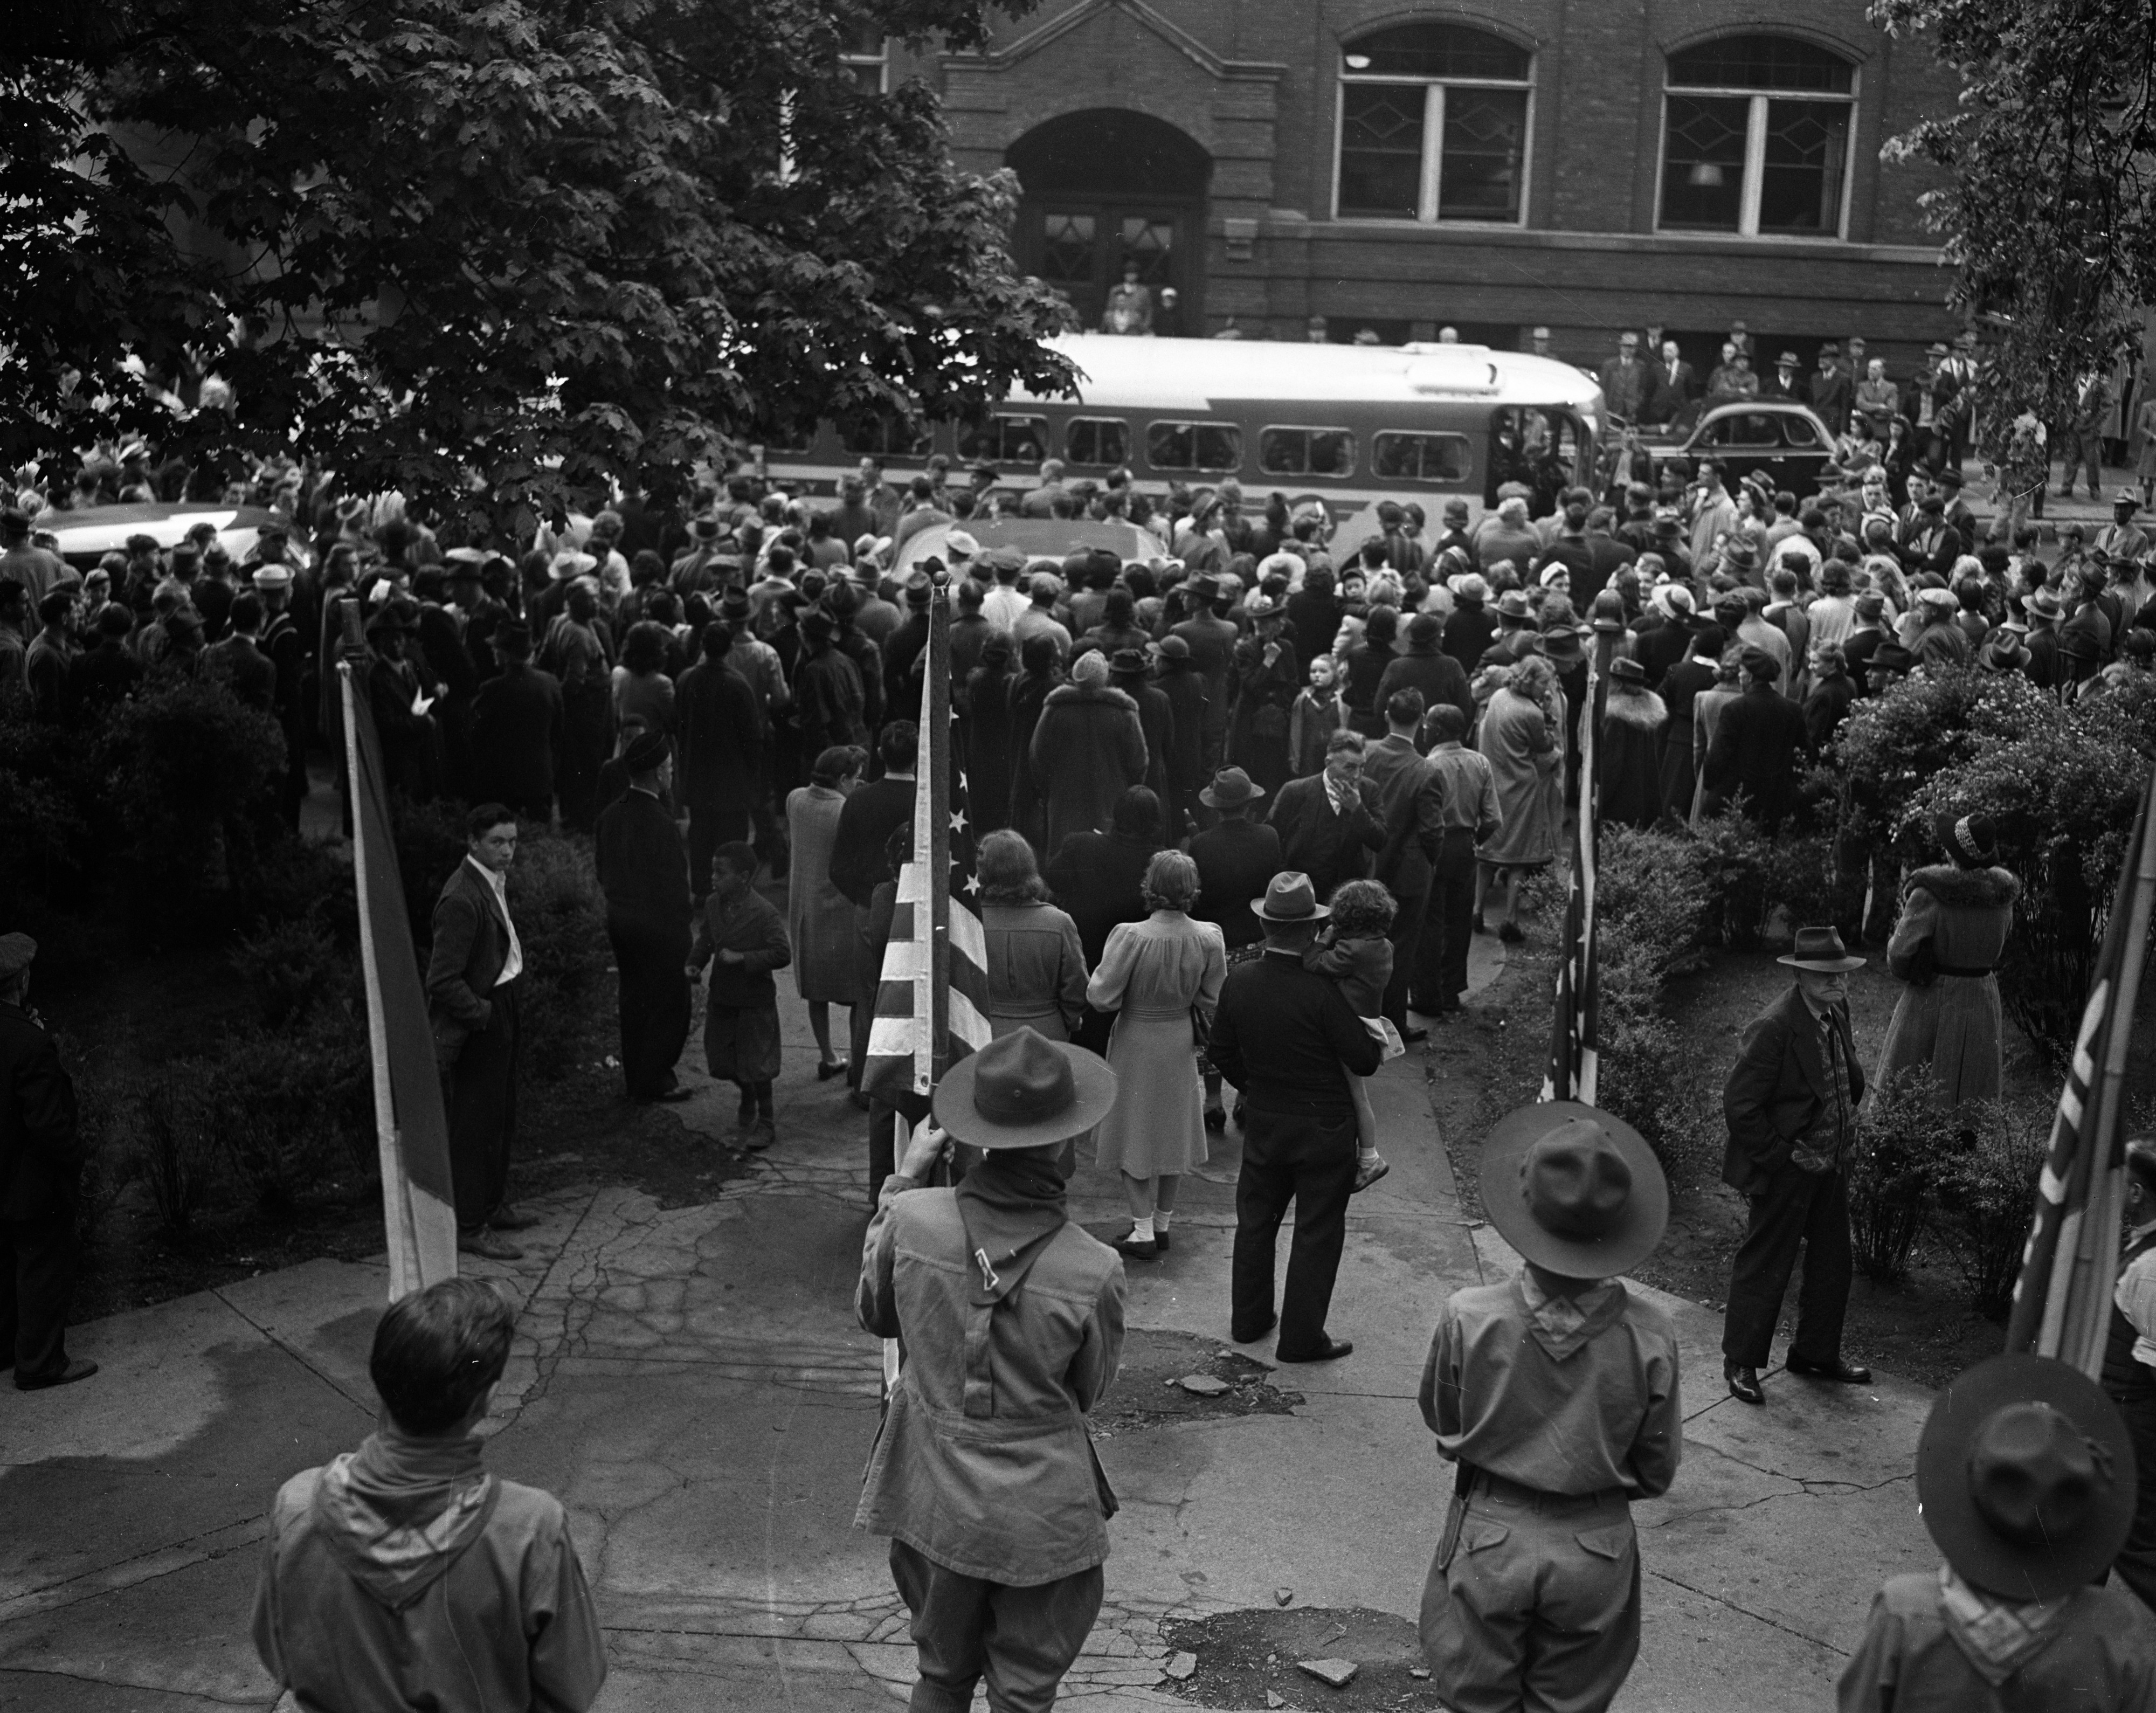 A crowd watches Ann Arbor draftees leave for selective service, May 13, 1942 image